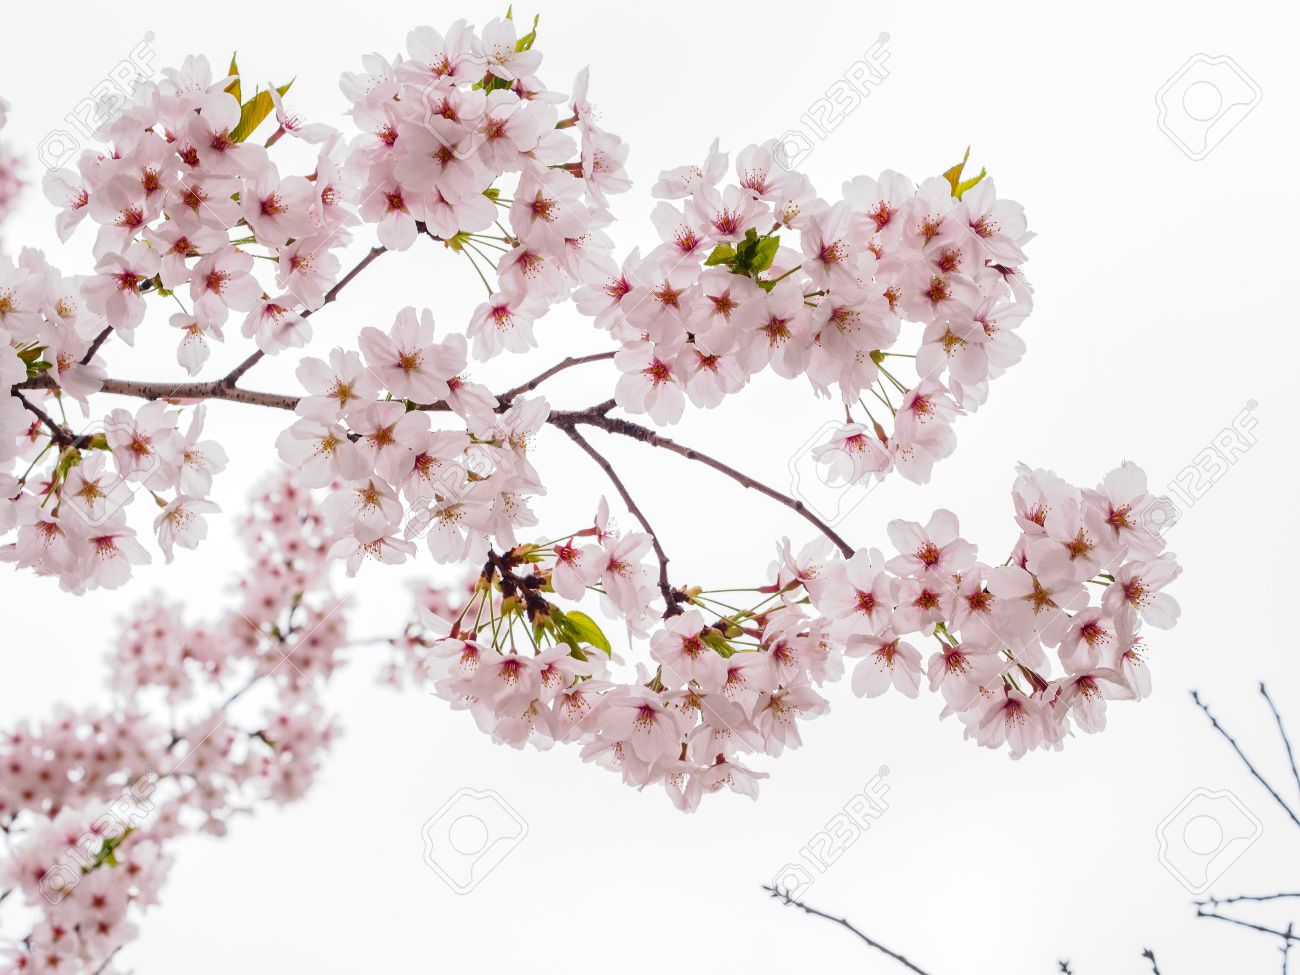 Spring flowers series beautiful cherry blossom pink sakura spring flowers series beautiful cherry blossom pink sakura flowers isloated in white background stock dhlflorist Images